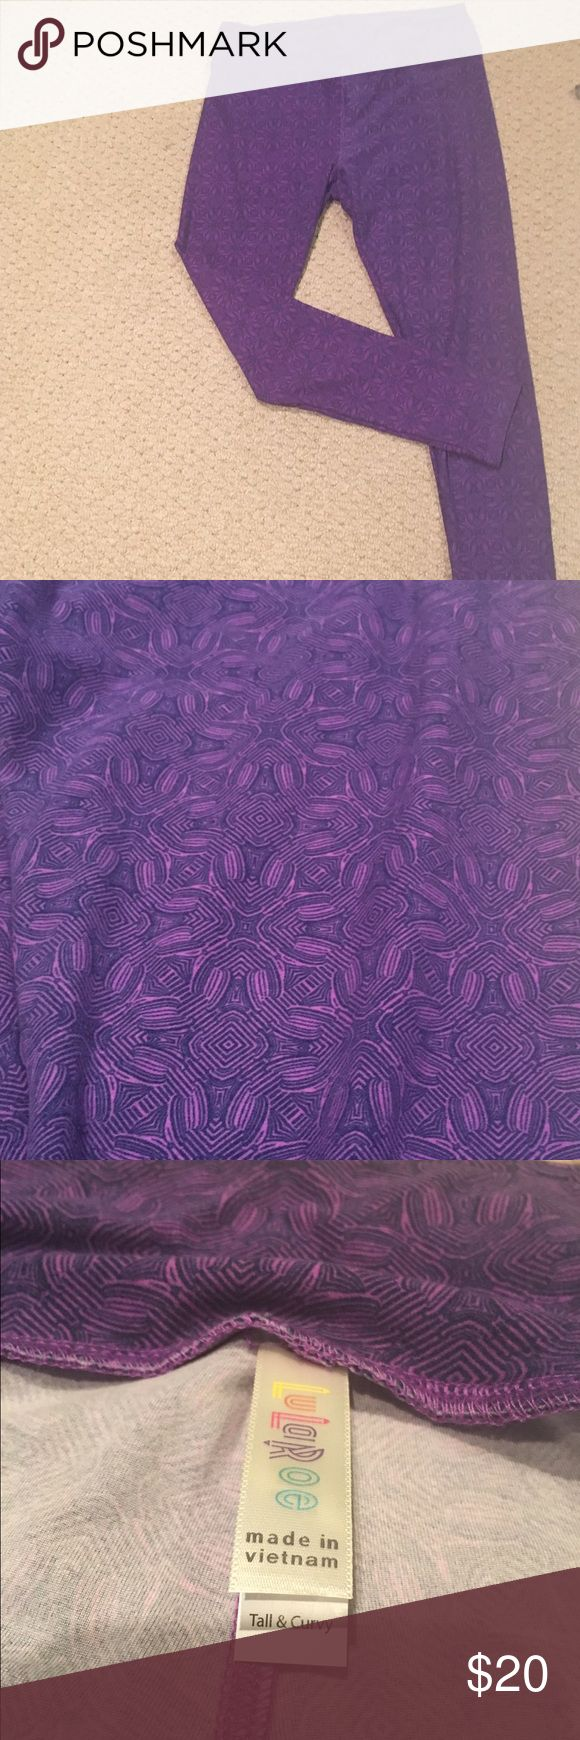 "LulaRoe Tall and Curvy Purple Leggings These famed ""buttery"" leggings have only been worn once for about 2 hours.  They are great for curvy or over 5' 7"" ladies.  This purple pattern looks great will tons of tops. The model pic leggings are different, but there to show you styling options! LuLaRoe Pants Leggings"